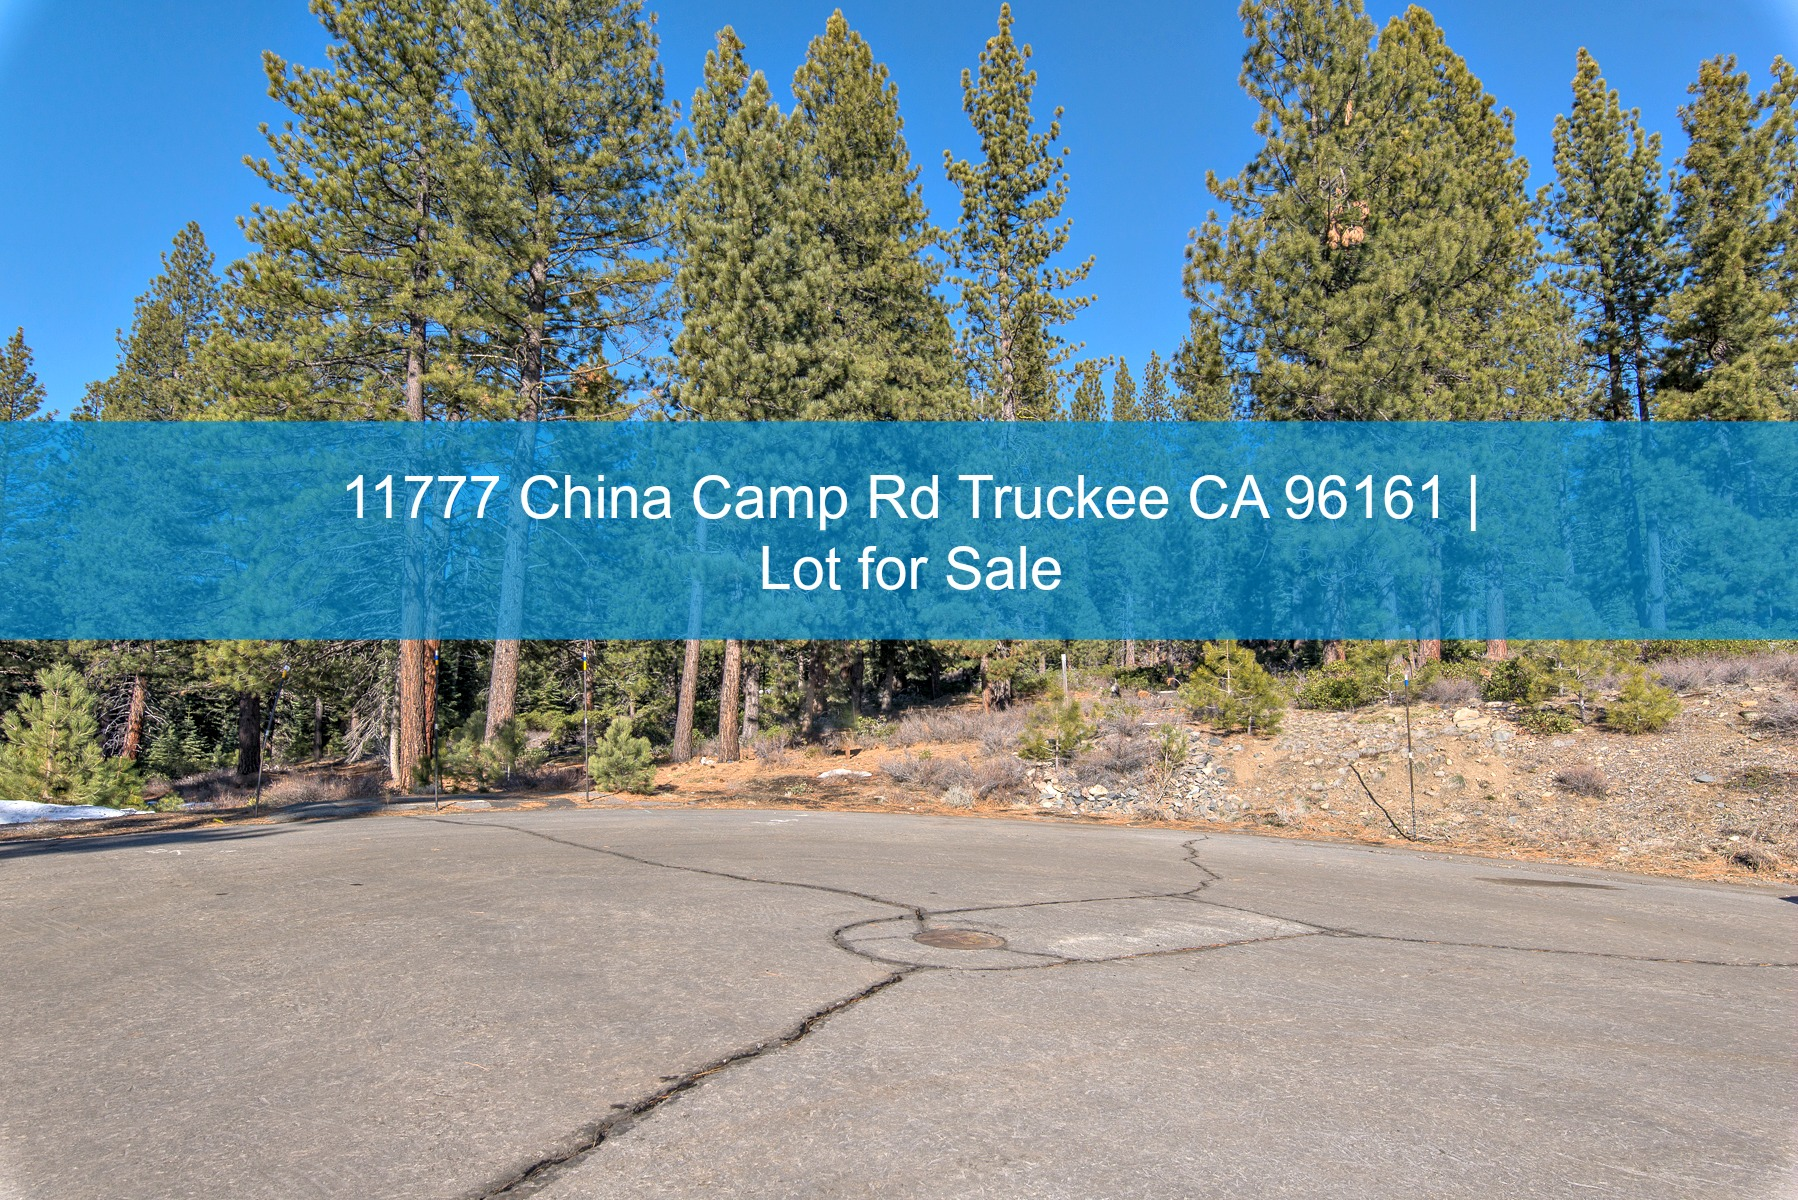 Truckee CA Lot for Sale  - Stunning views, more than half an acre of space, and a genuine sense of tranquility are yours to enjoy in this conveniently located Truckee CA lot for sale.